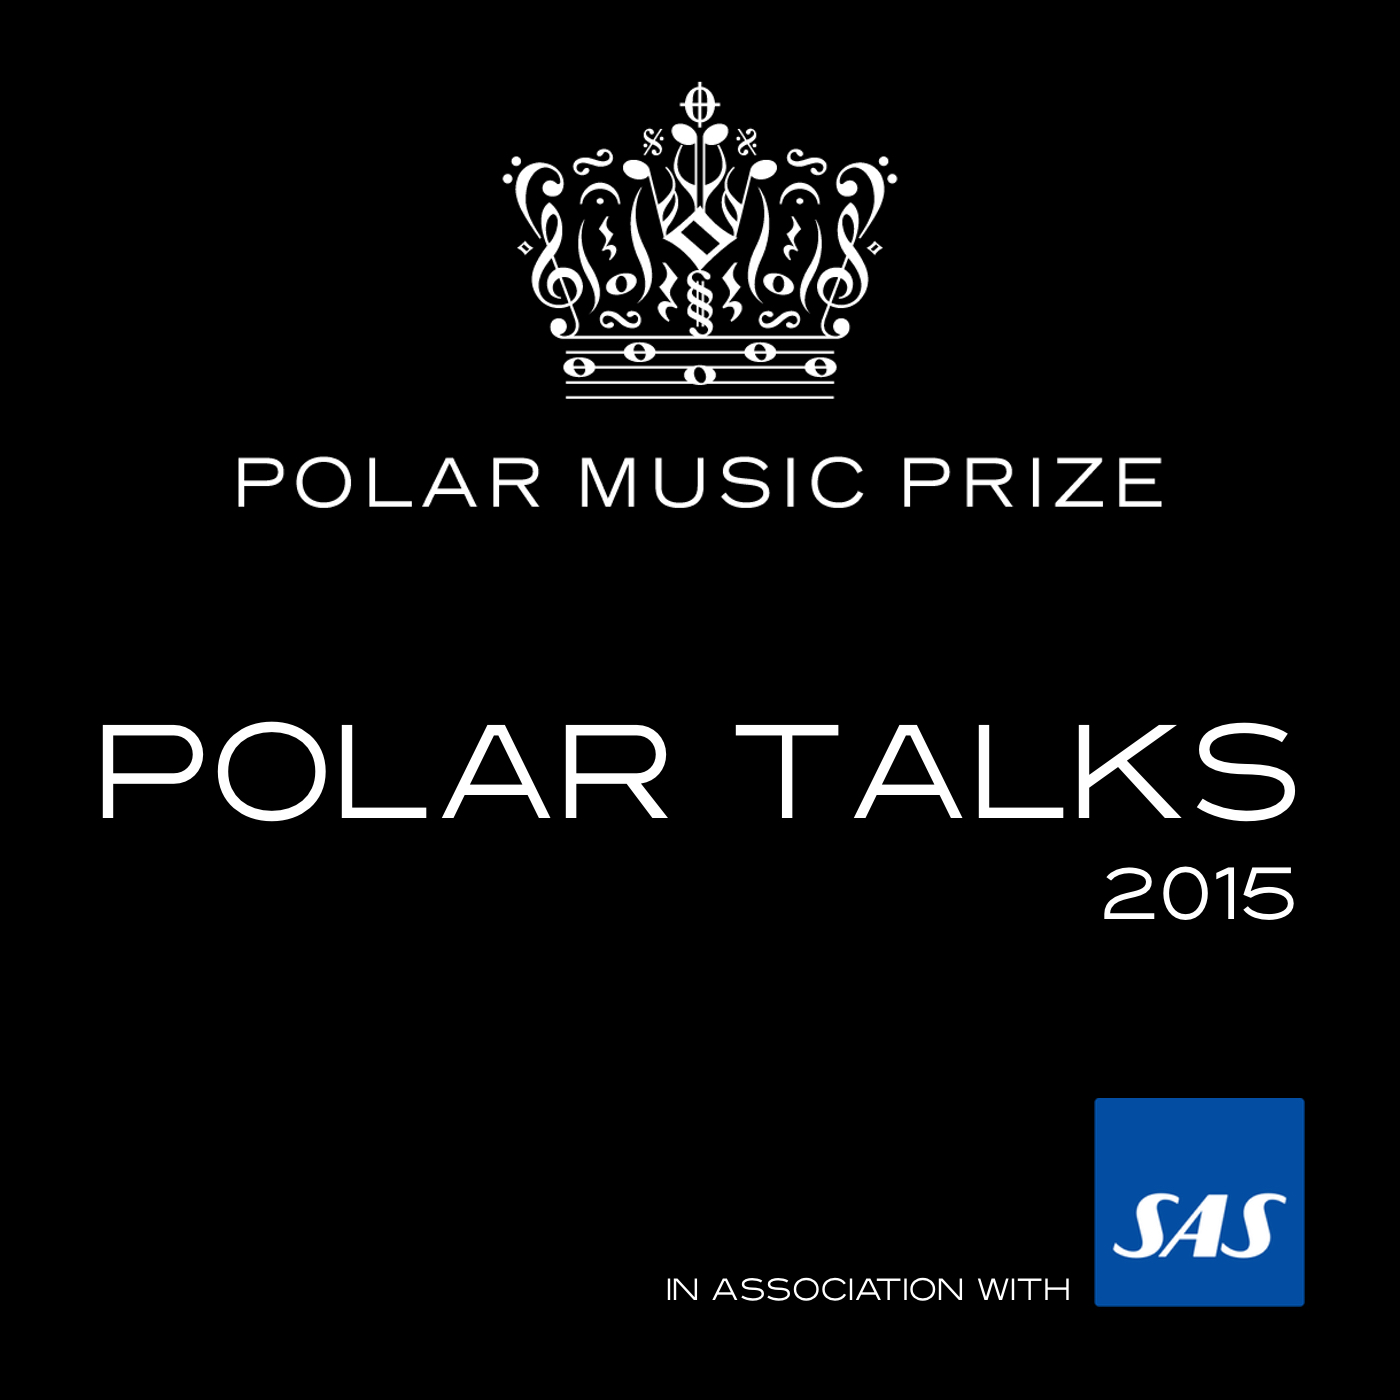 Polar Talks 2015